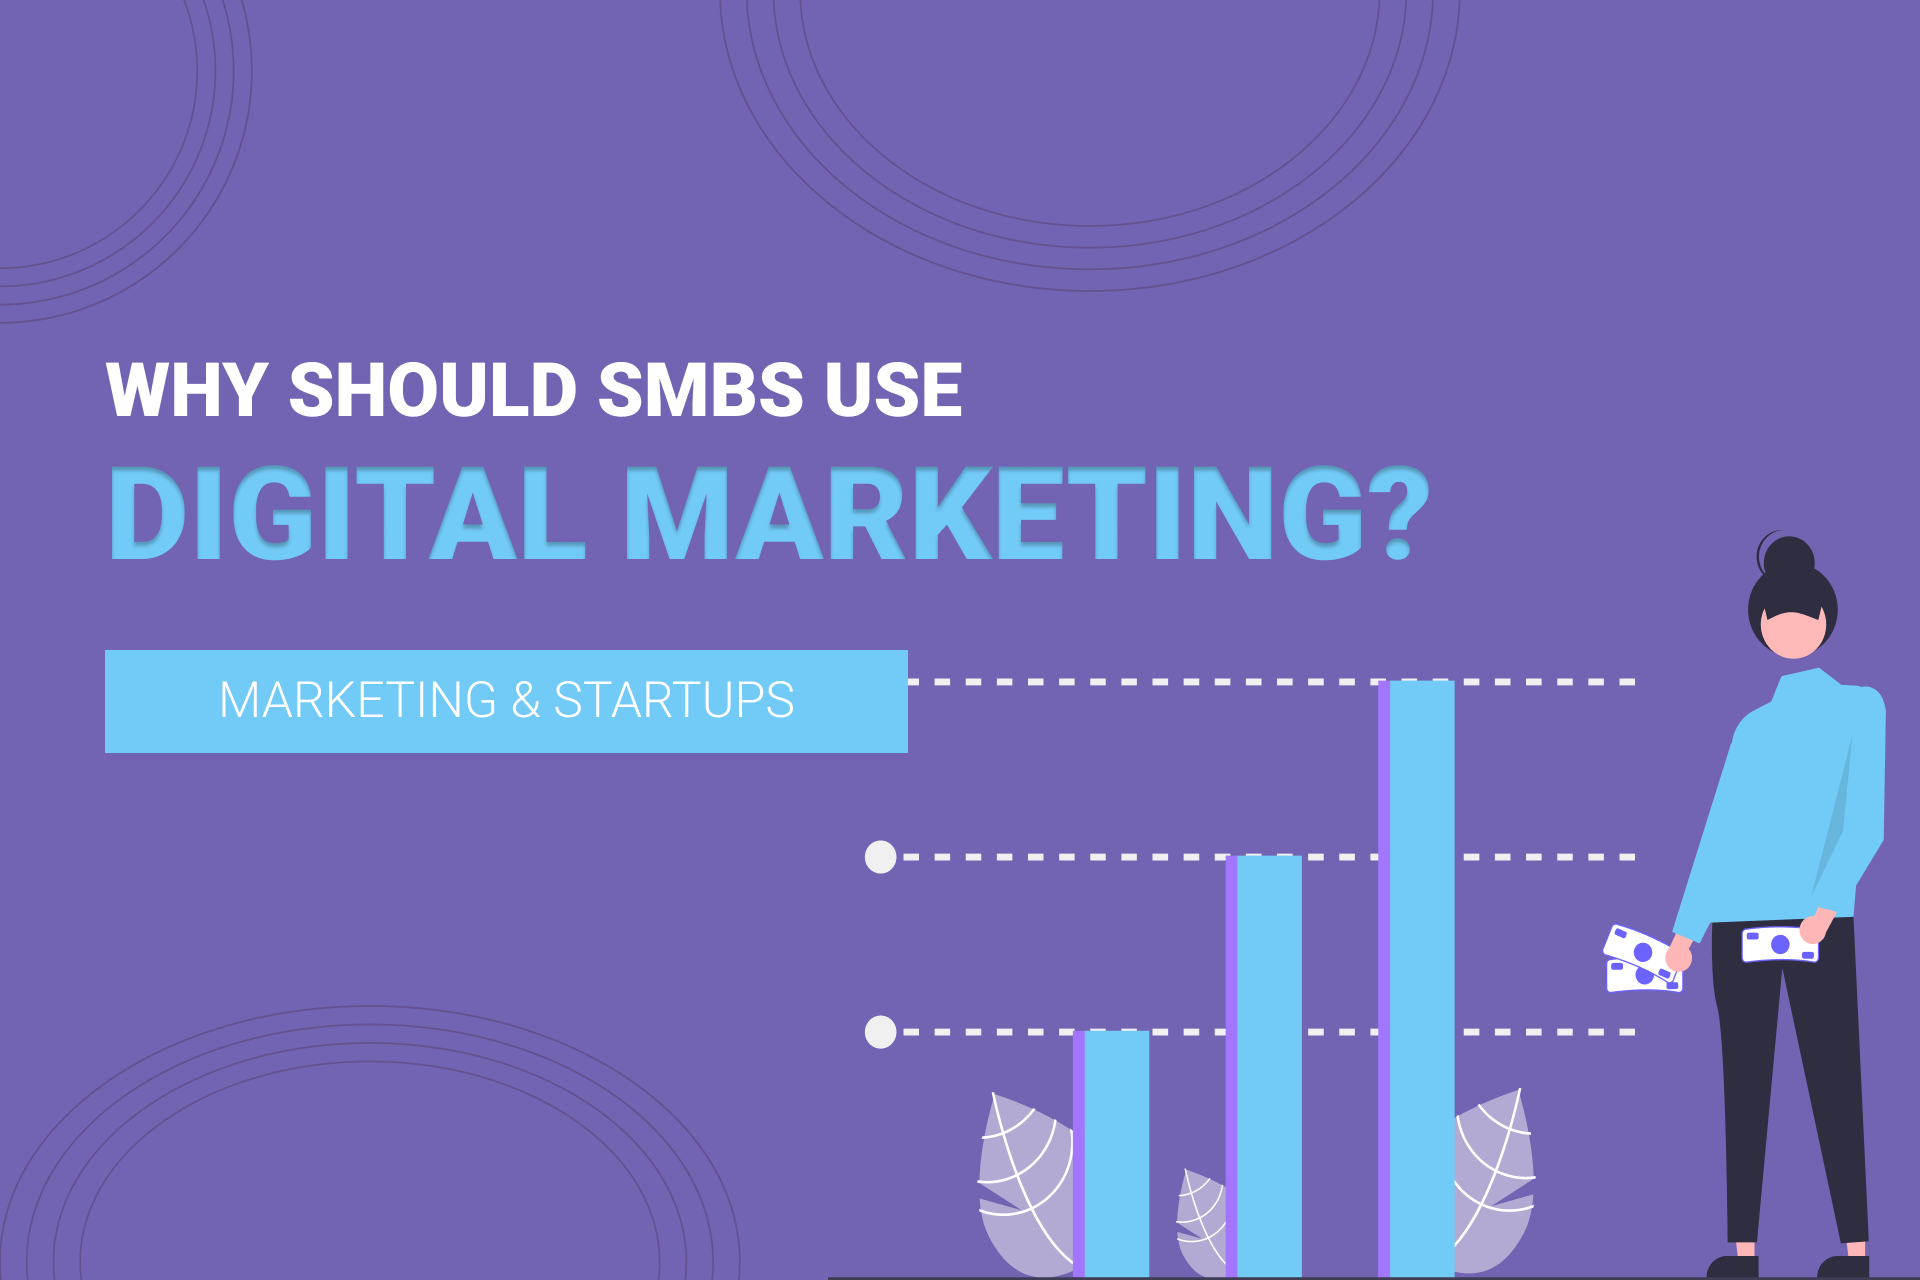 7 Reasons To Use Digital Marketing For Small Businesses